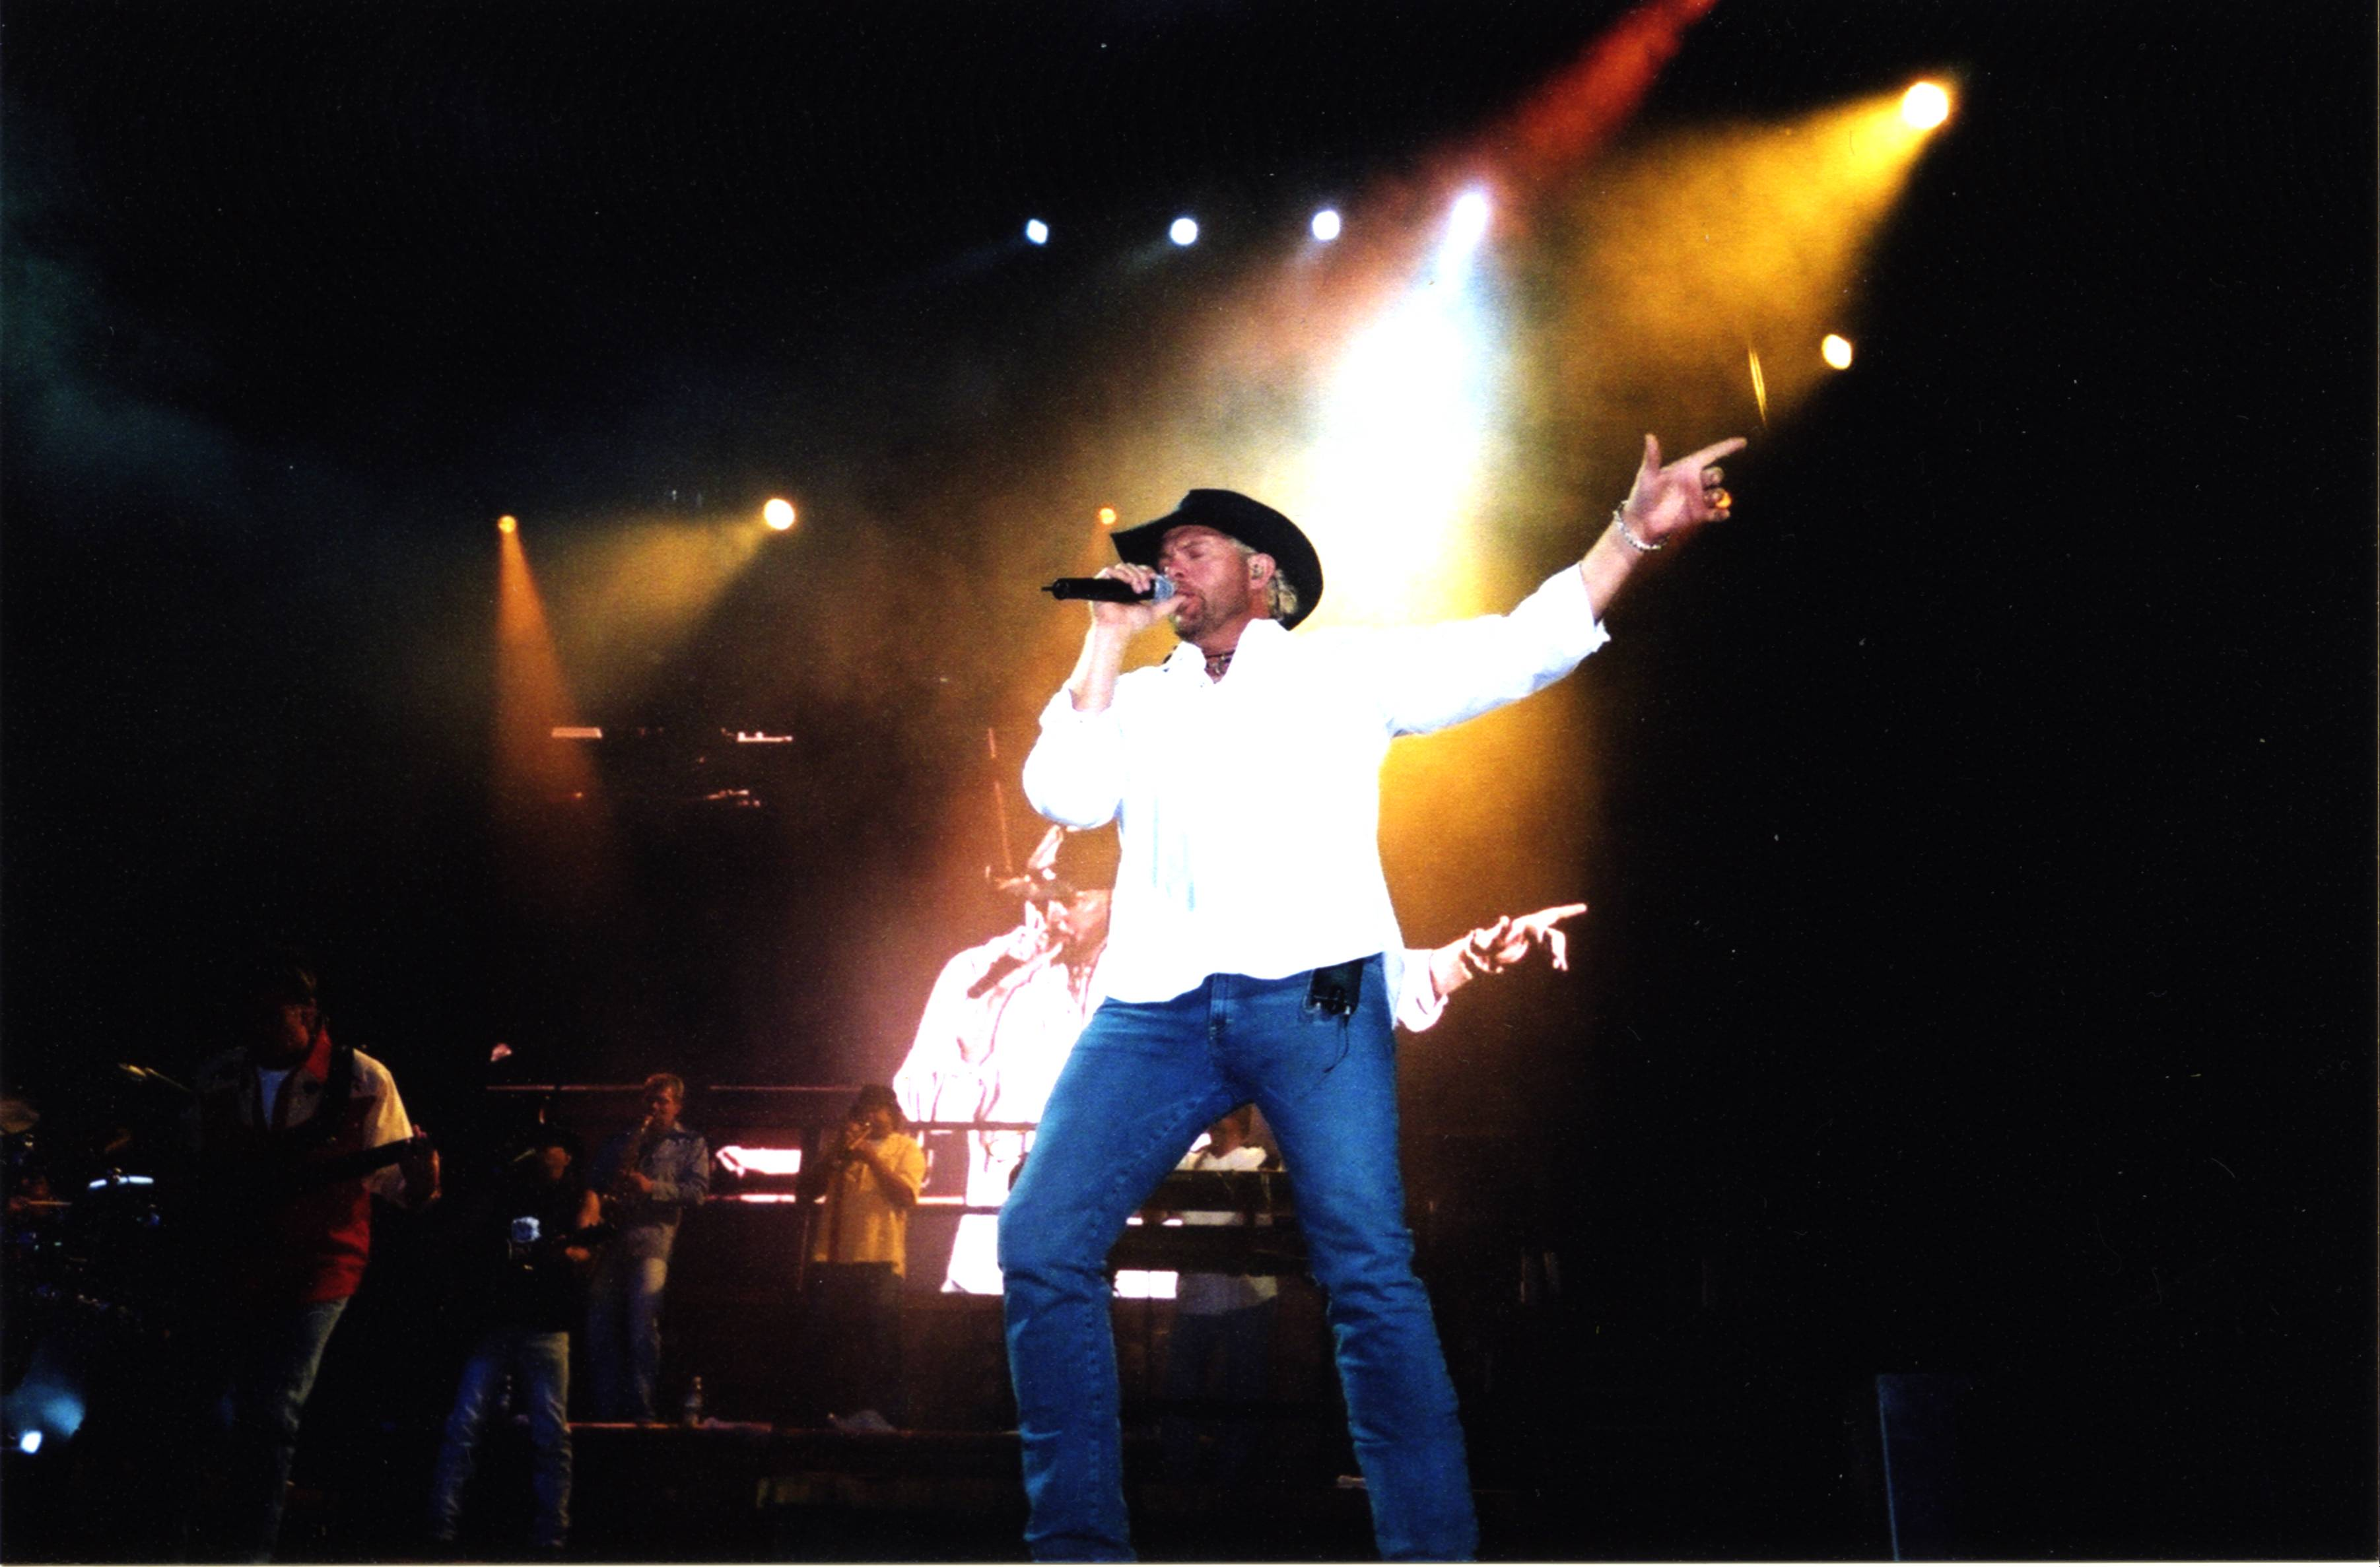 Toby keith concert dates in Perth